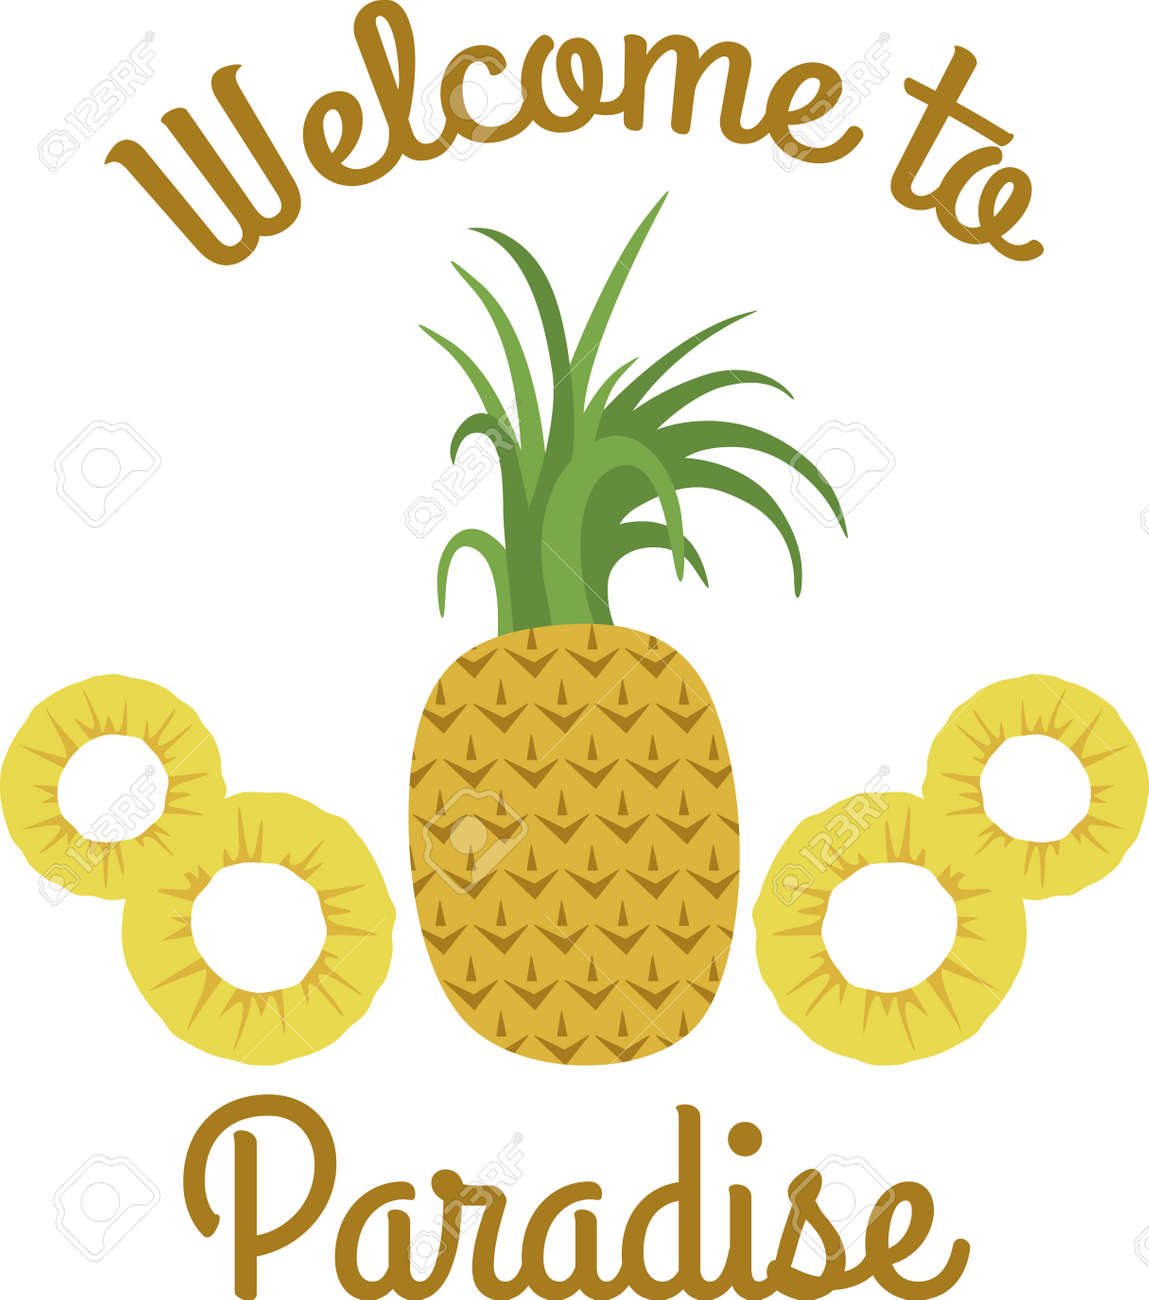 These Pineapples Are A Great Symbol For Hospitality Royalty Free